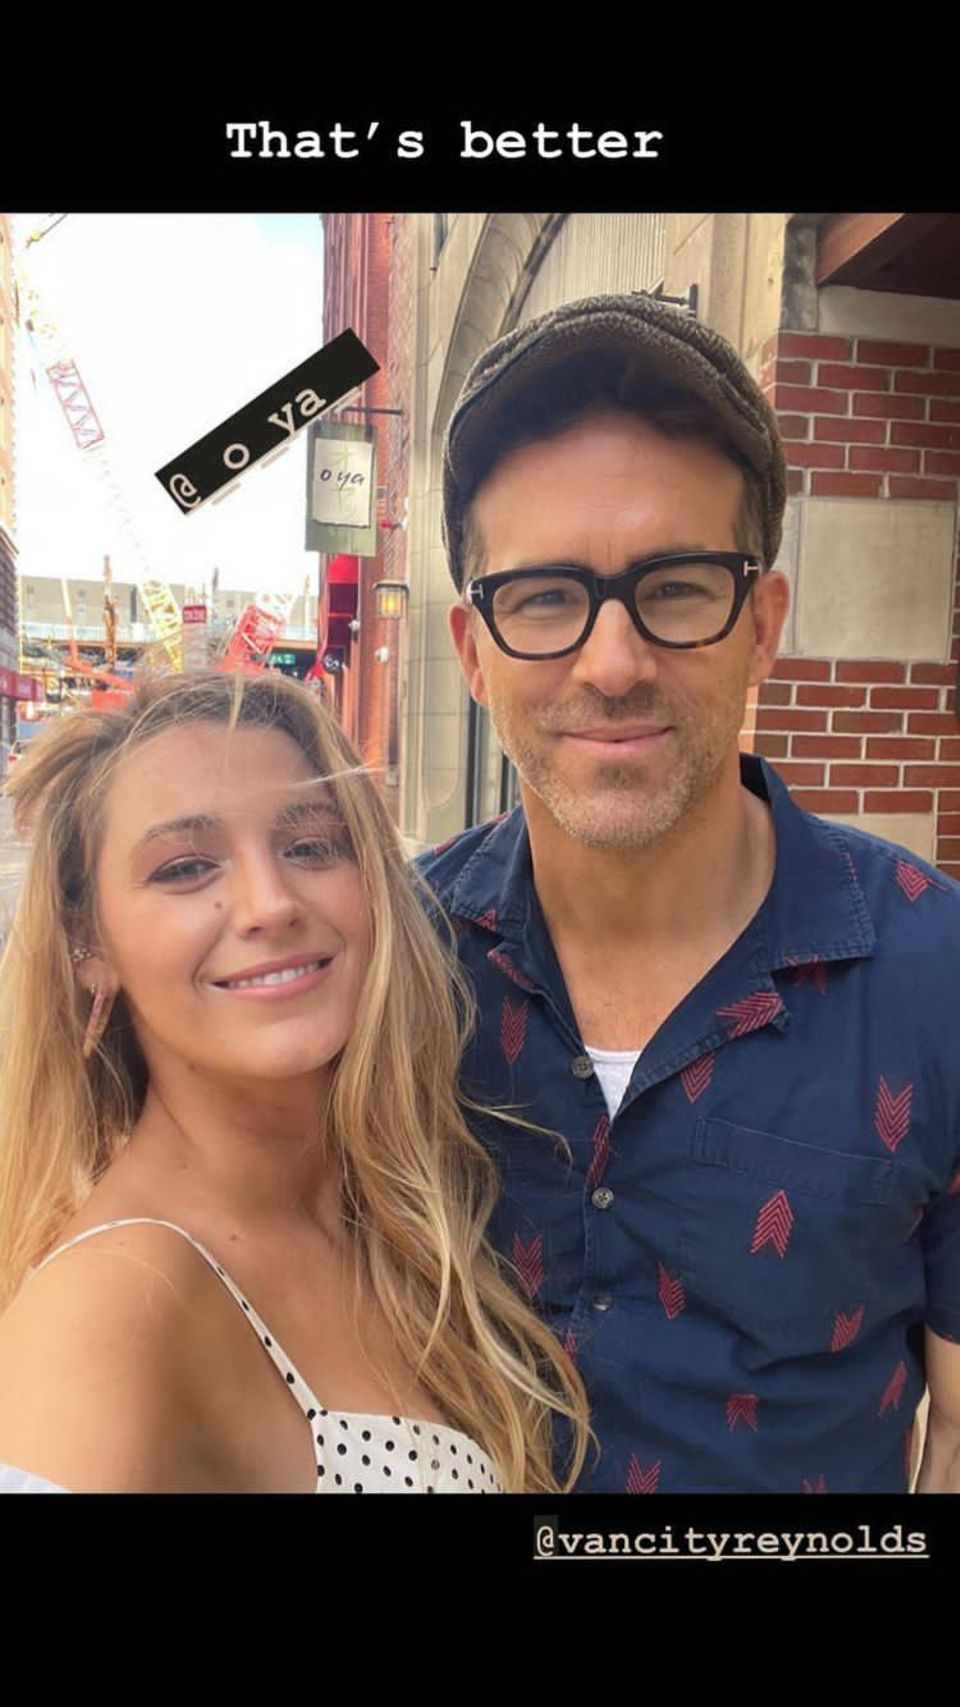 Blake Lively shares a cute snapshot of her date with Ryan Reynolds.